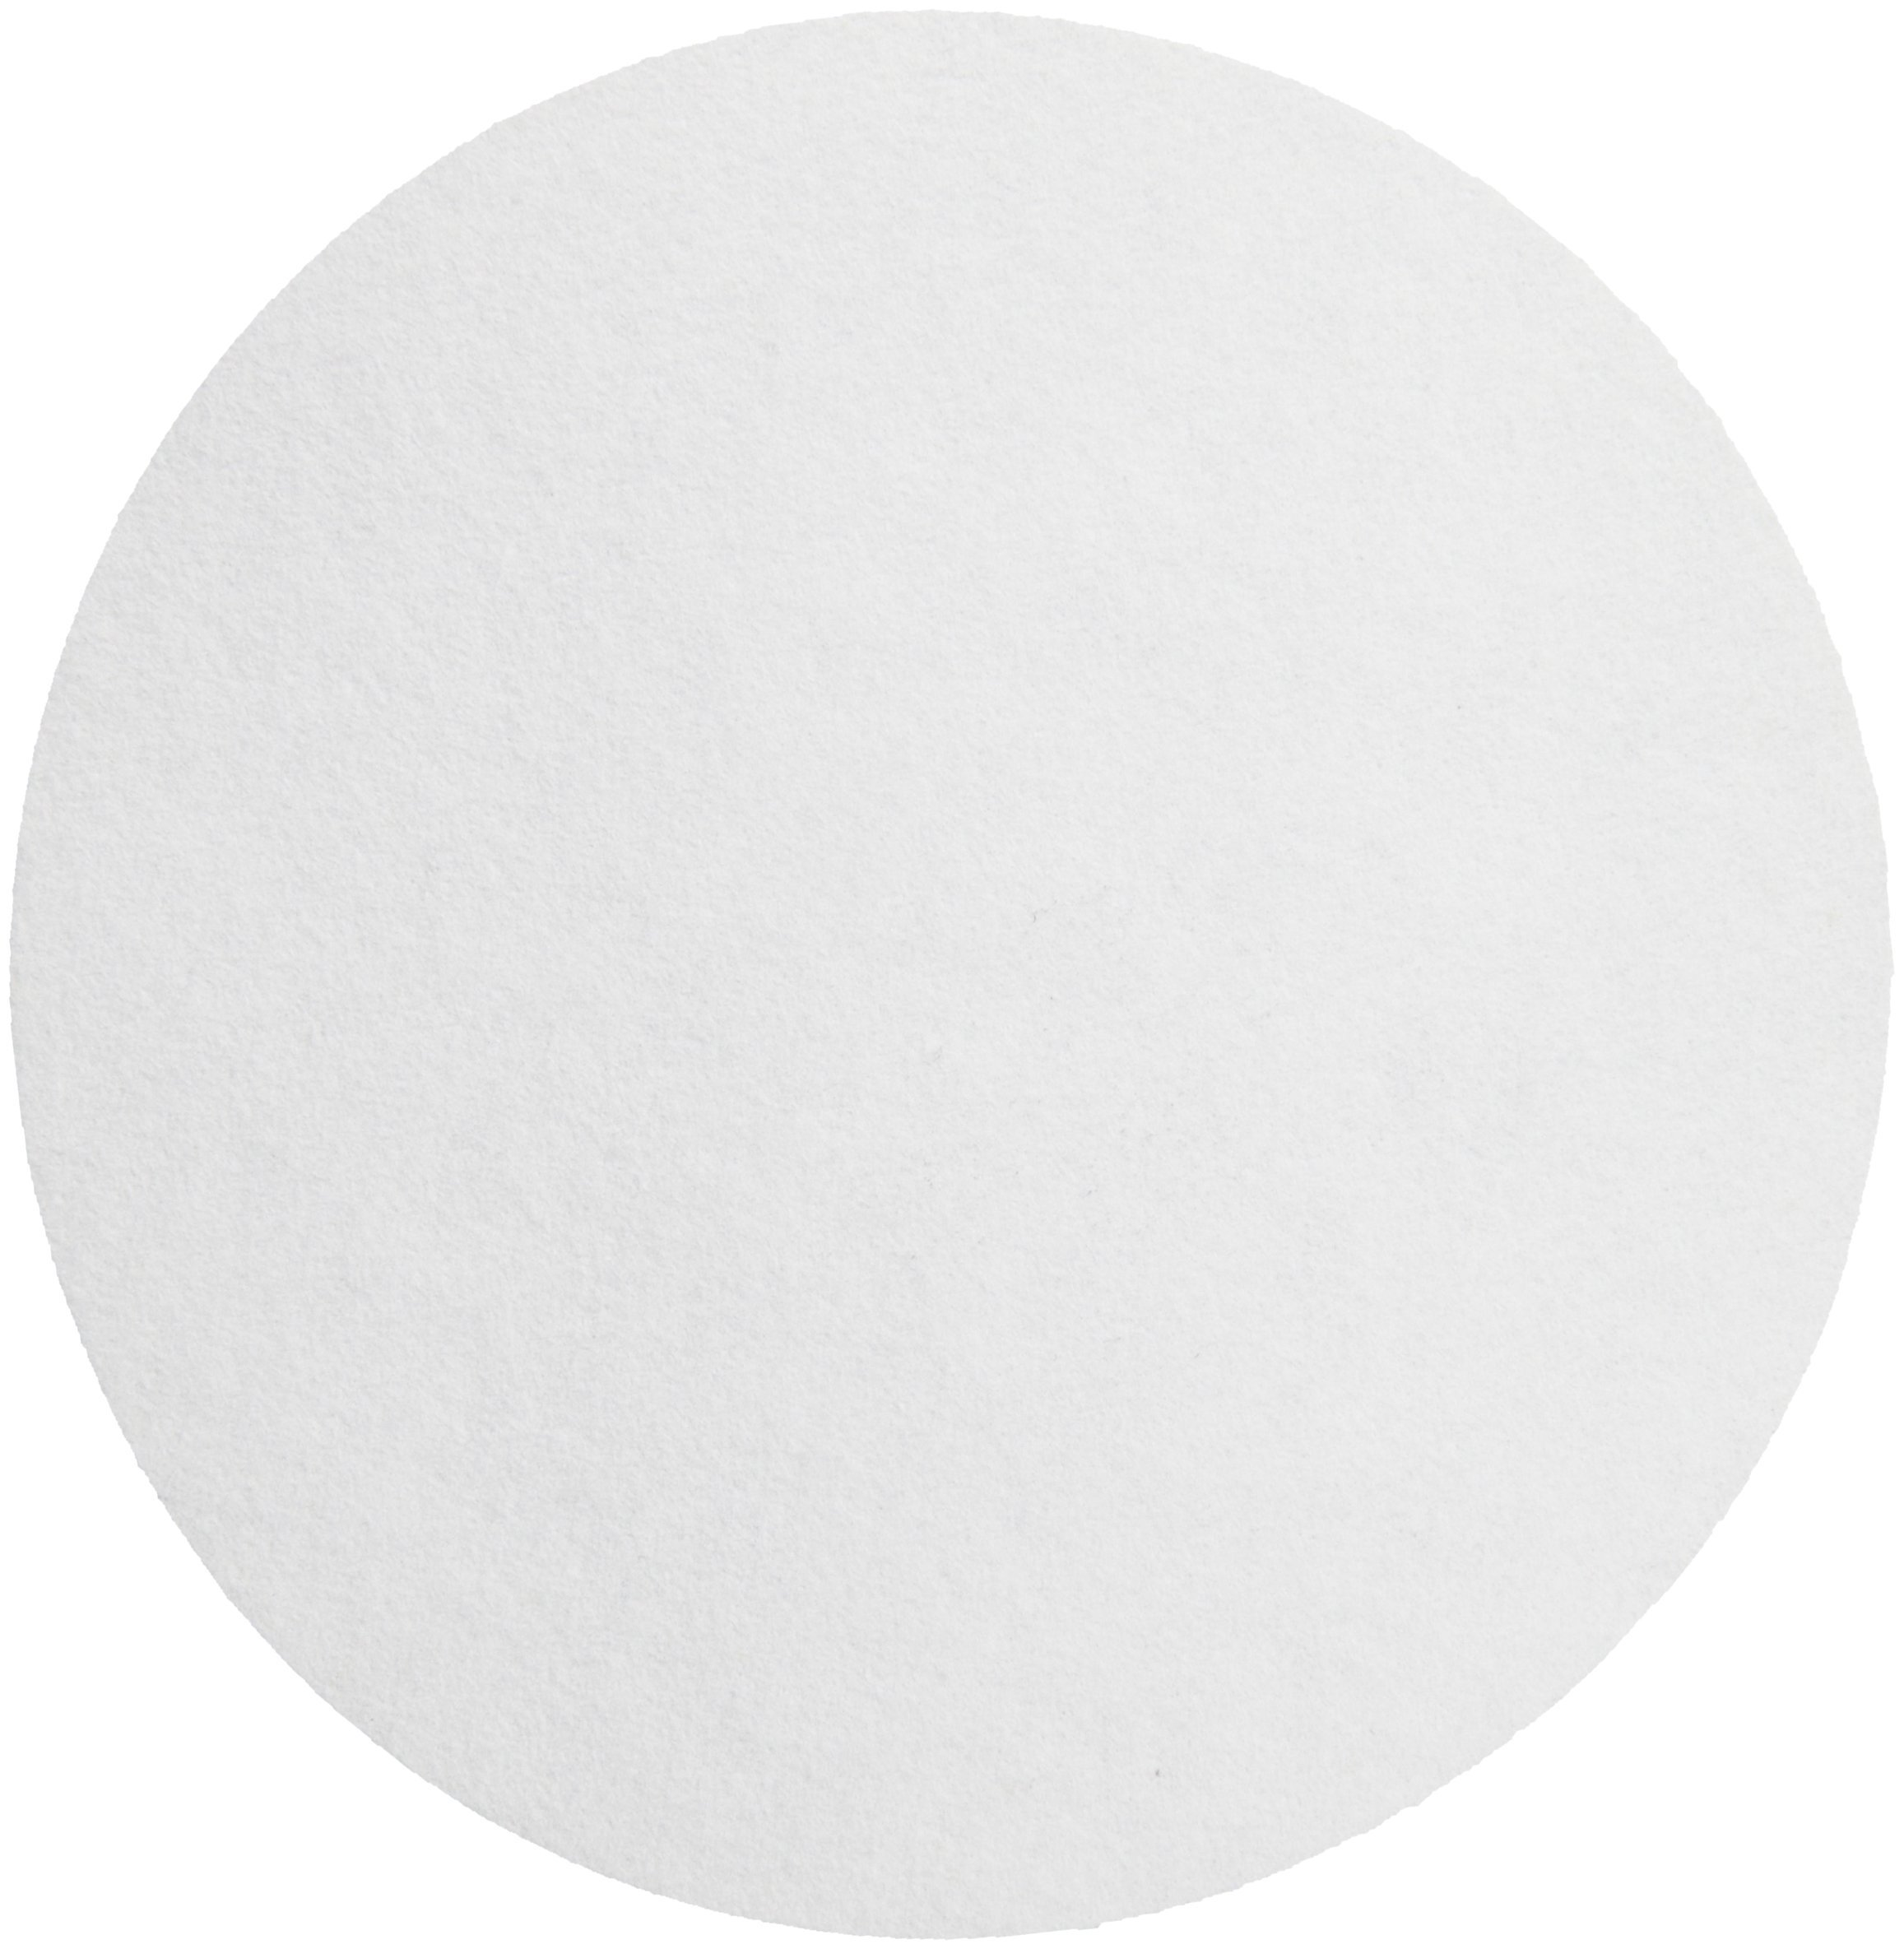 Whatman 2200-125 1PS Phase Separator Filter Paper, 125mm Diameter (Pack of 100)